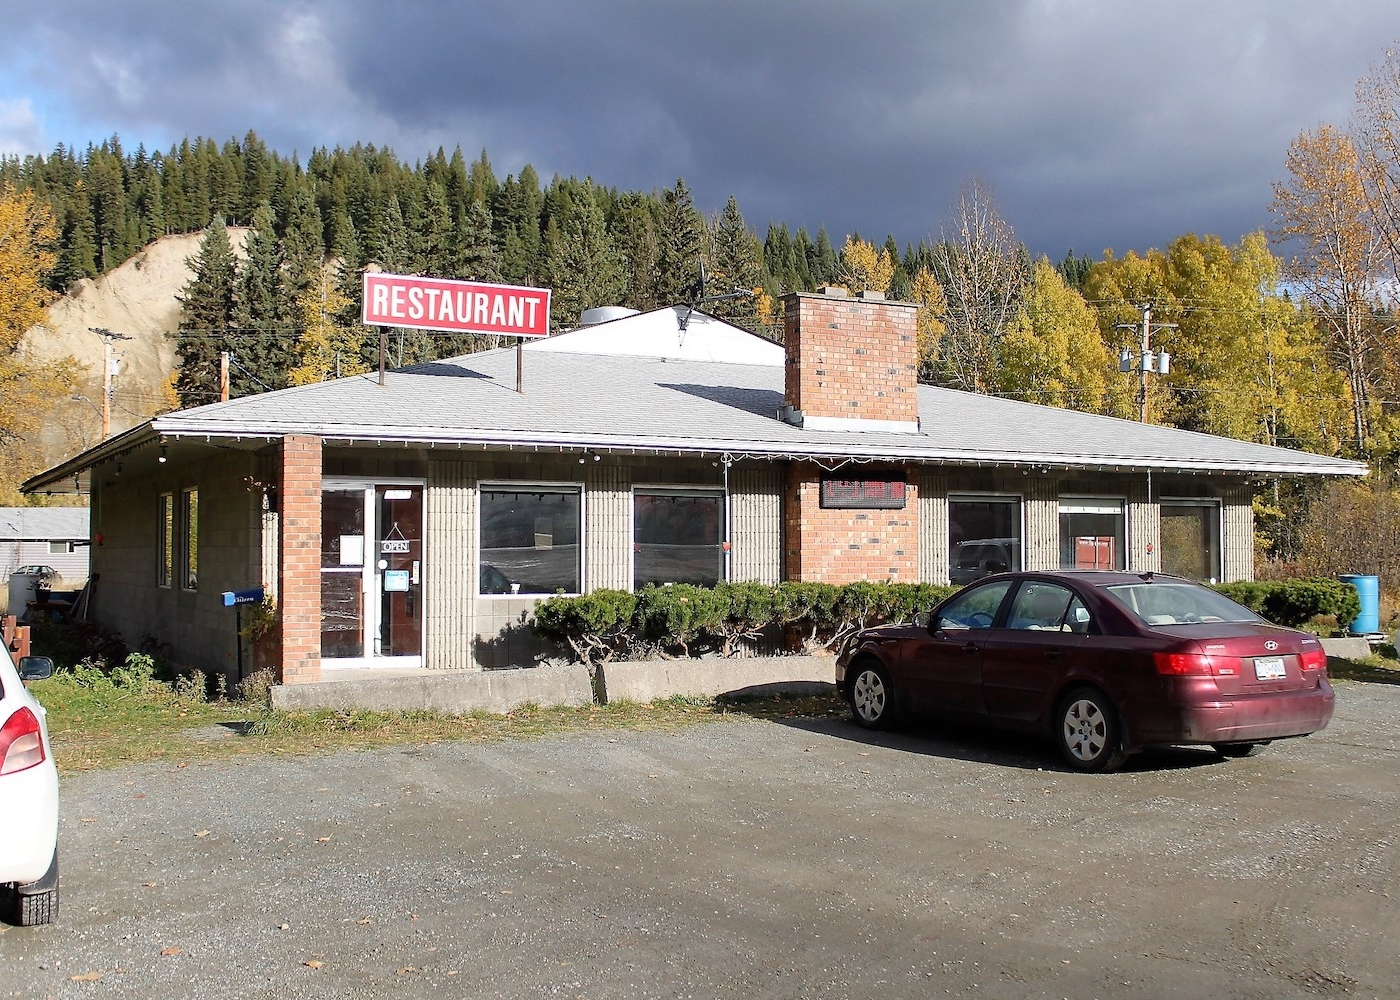 Commercial property for less than a house! is a business for sale in BC.